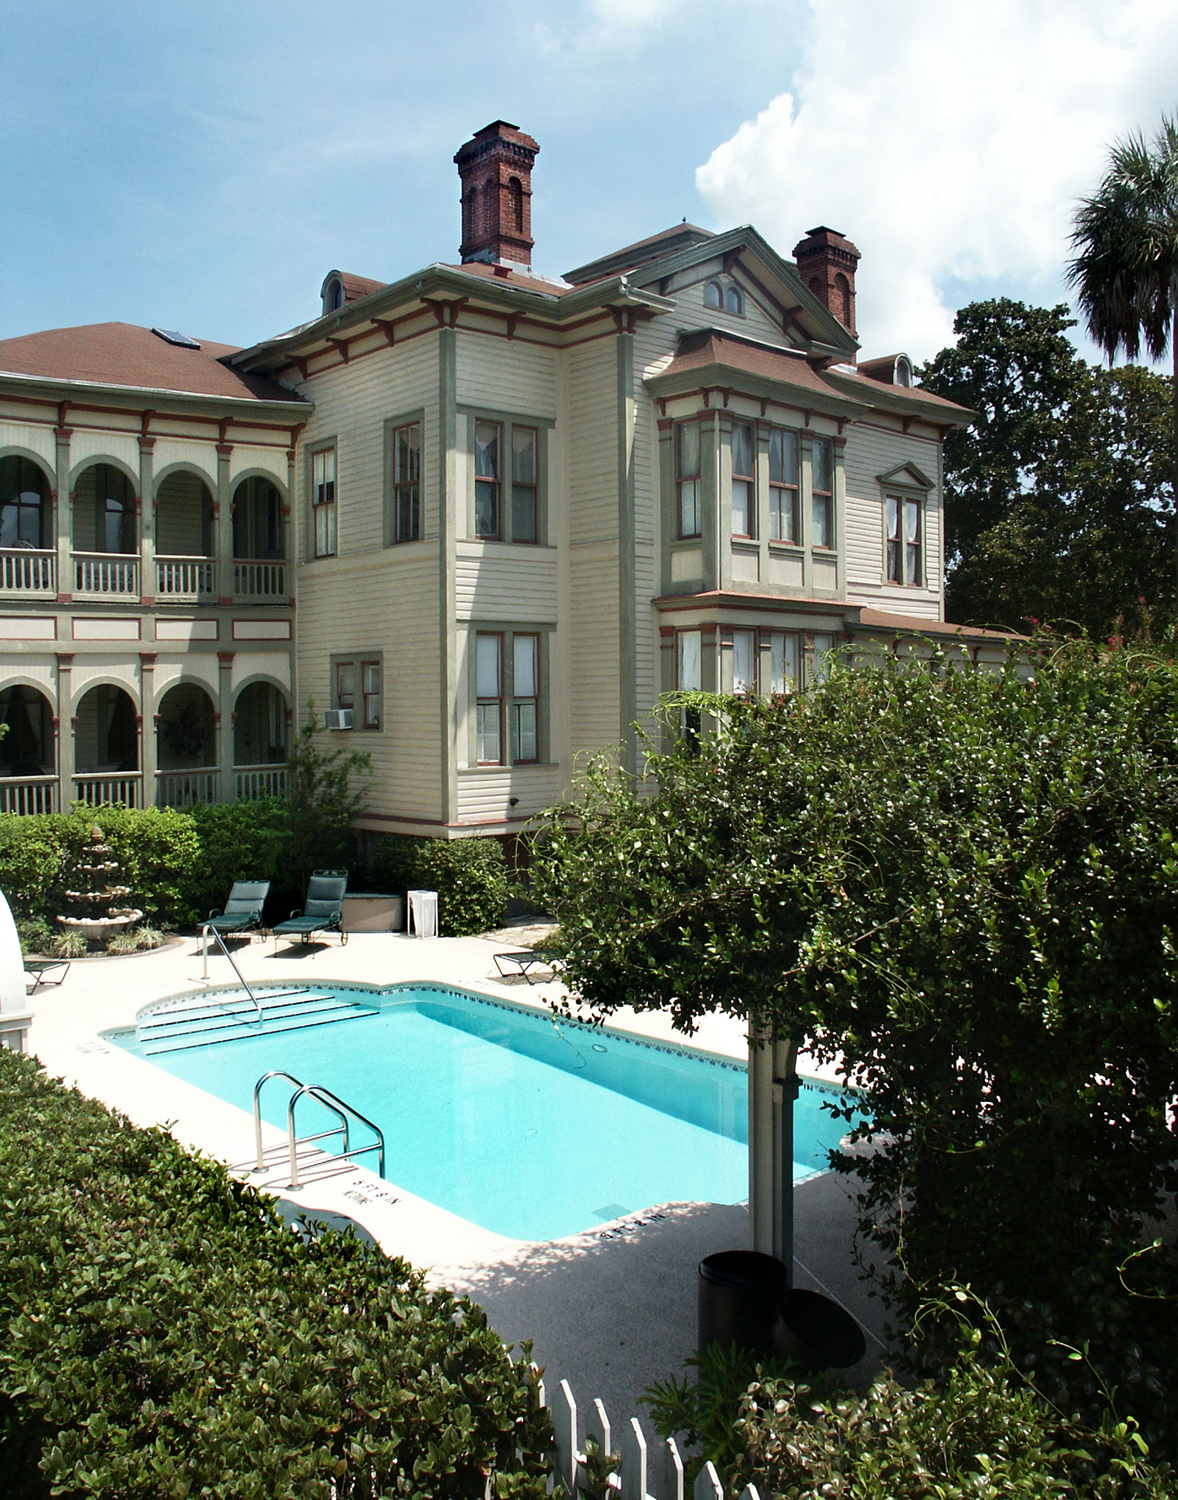 Astonishing The Fairbanks House Amelia Island Bed And Breakfast Download Free Architecture Designs Embacsunscenecom